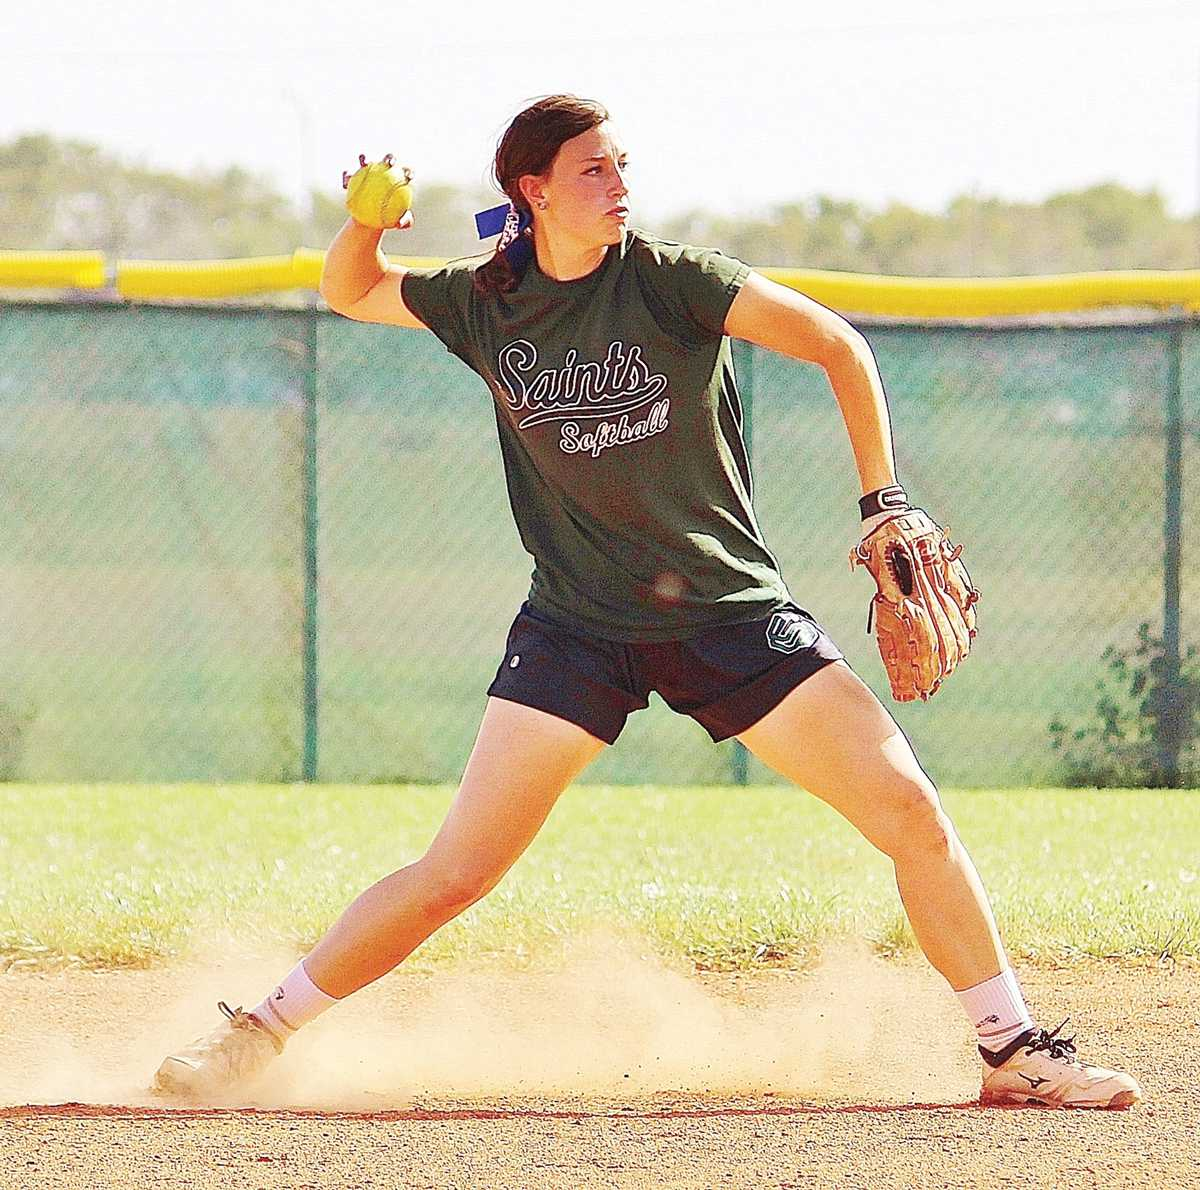 Crusader Photos/Xochitl Gonzalez Lady Saints softball shortstop Grace Petersen throws the ball to a teammate on second base during a drill in practice Tuesday. The Lady Saints will be playing against Northeastern Junior College on Saturday at 3 p.m.